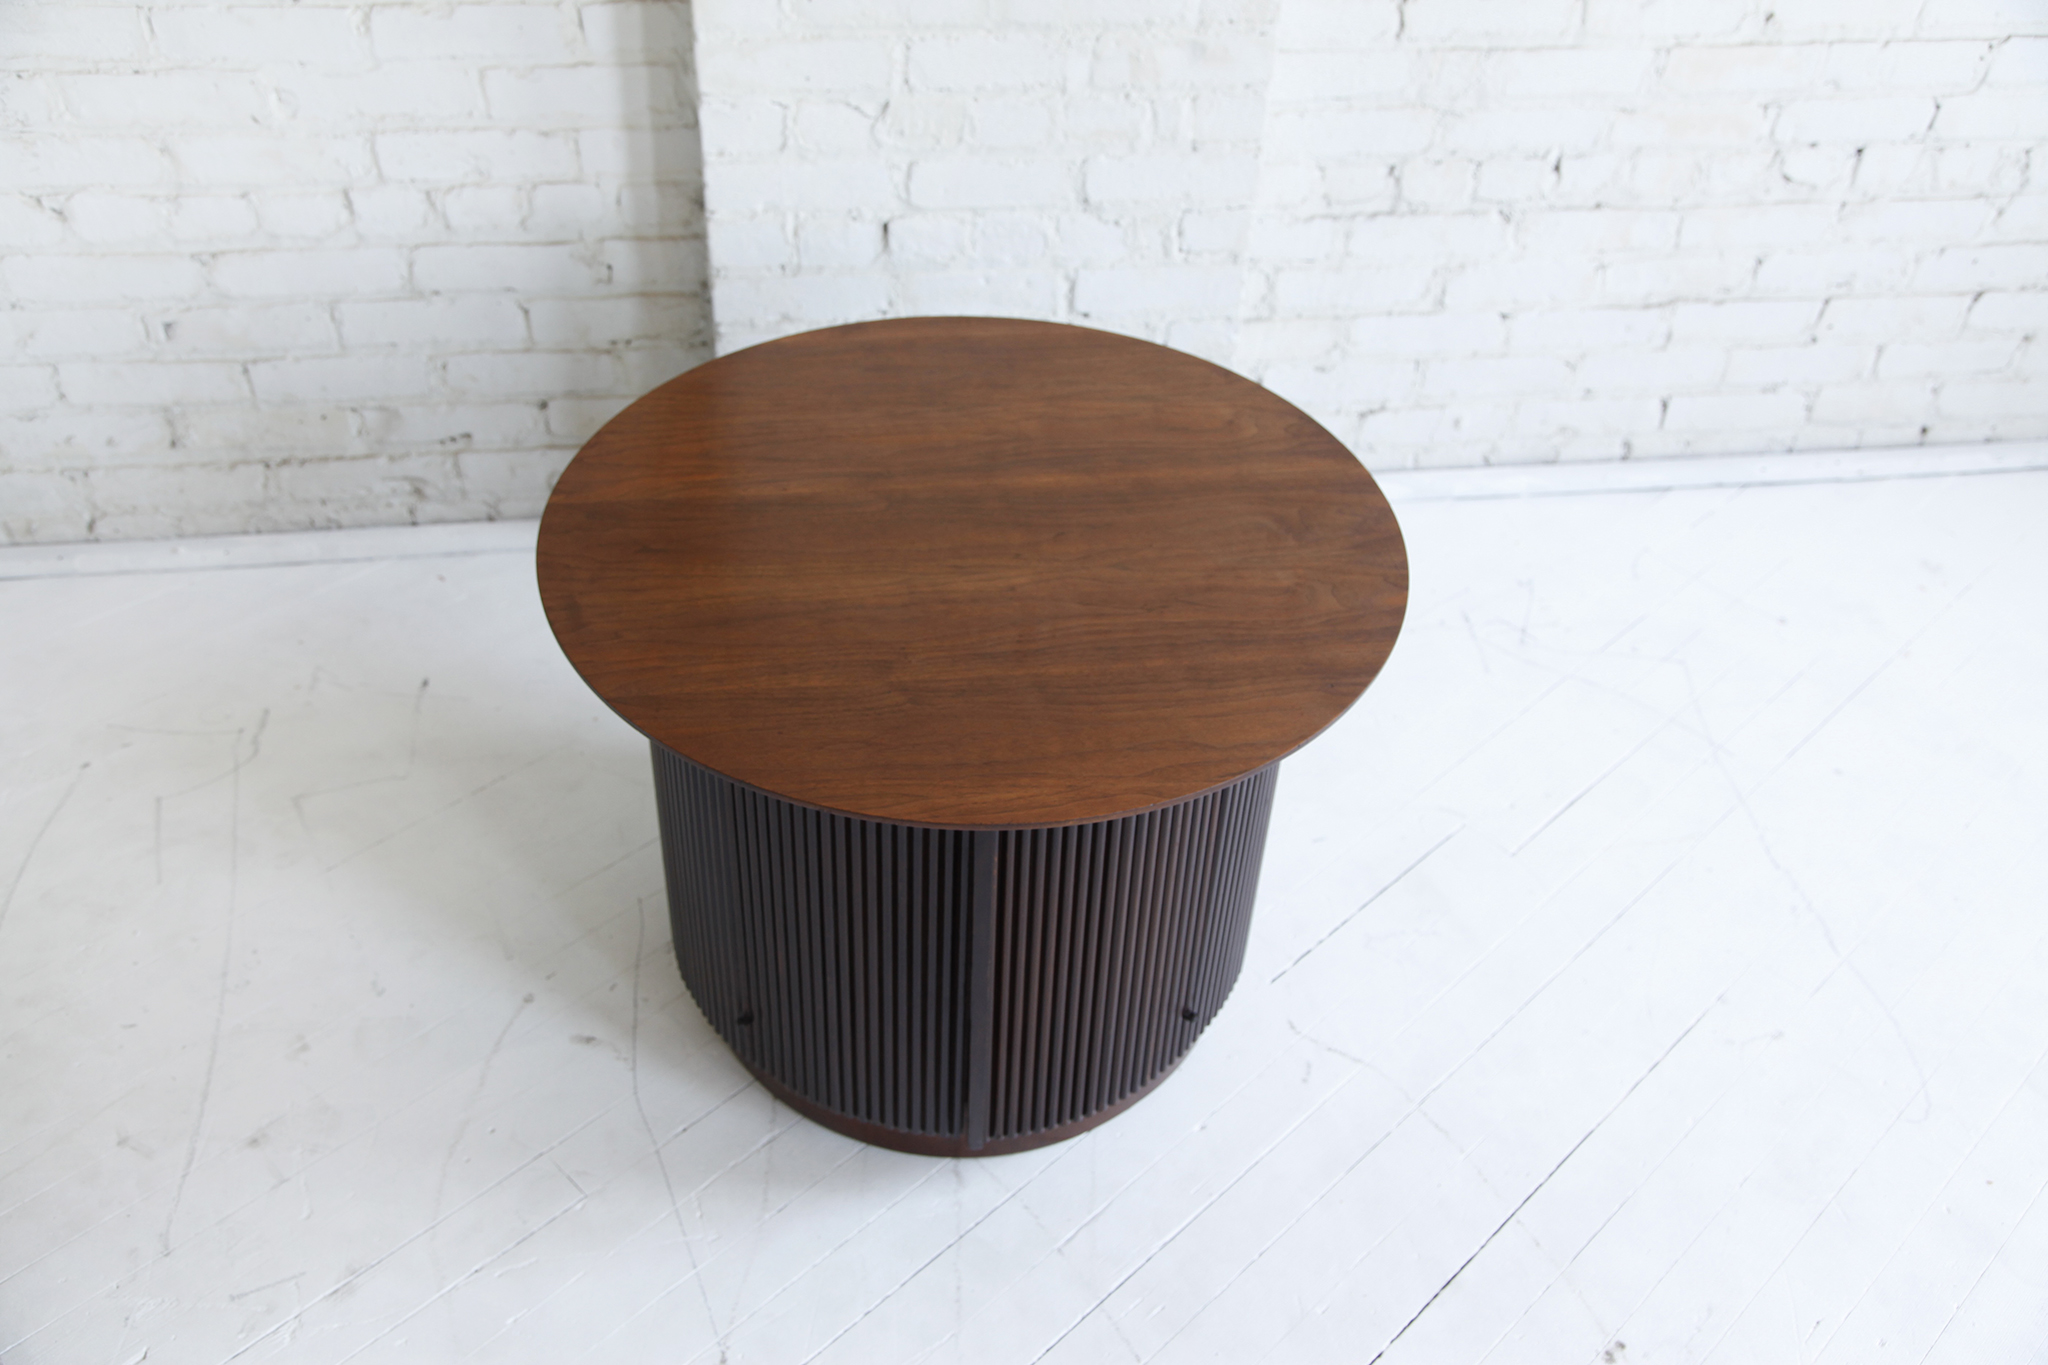 Mid century modern round coffee table by Lane – MCMBKNY